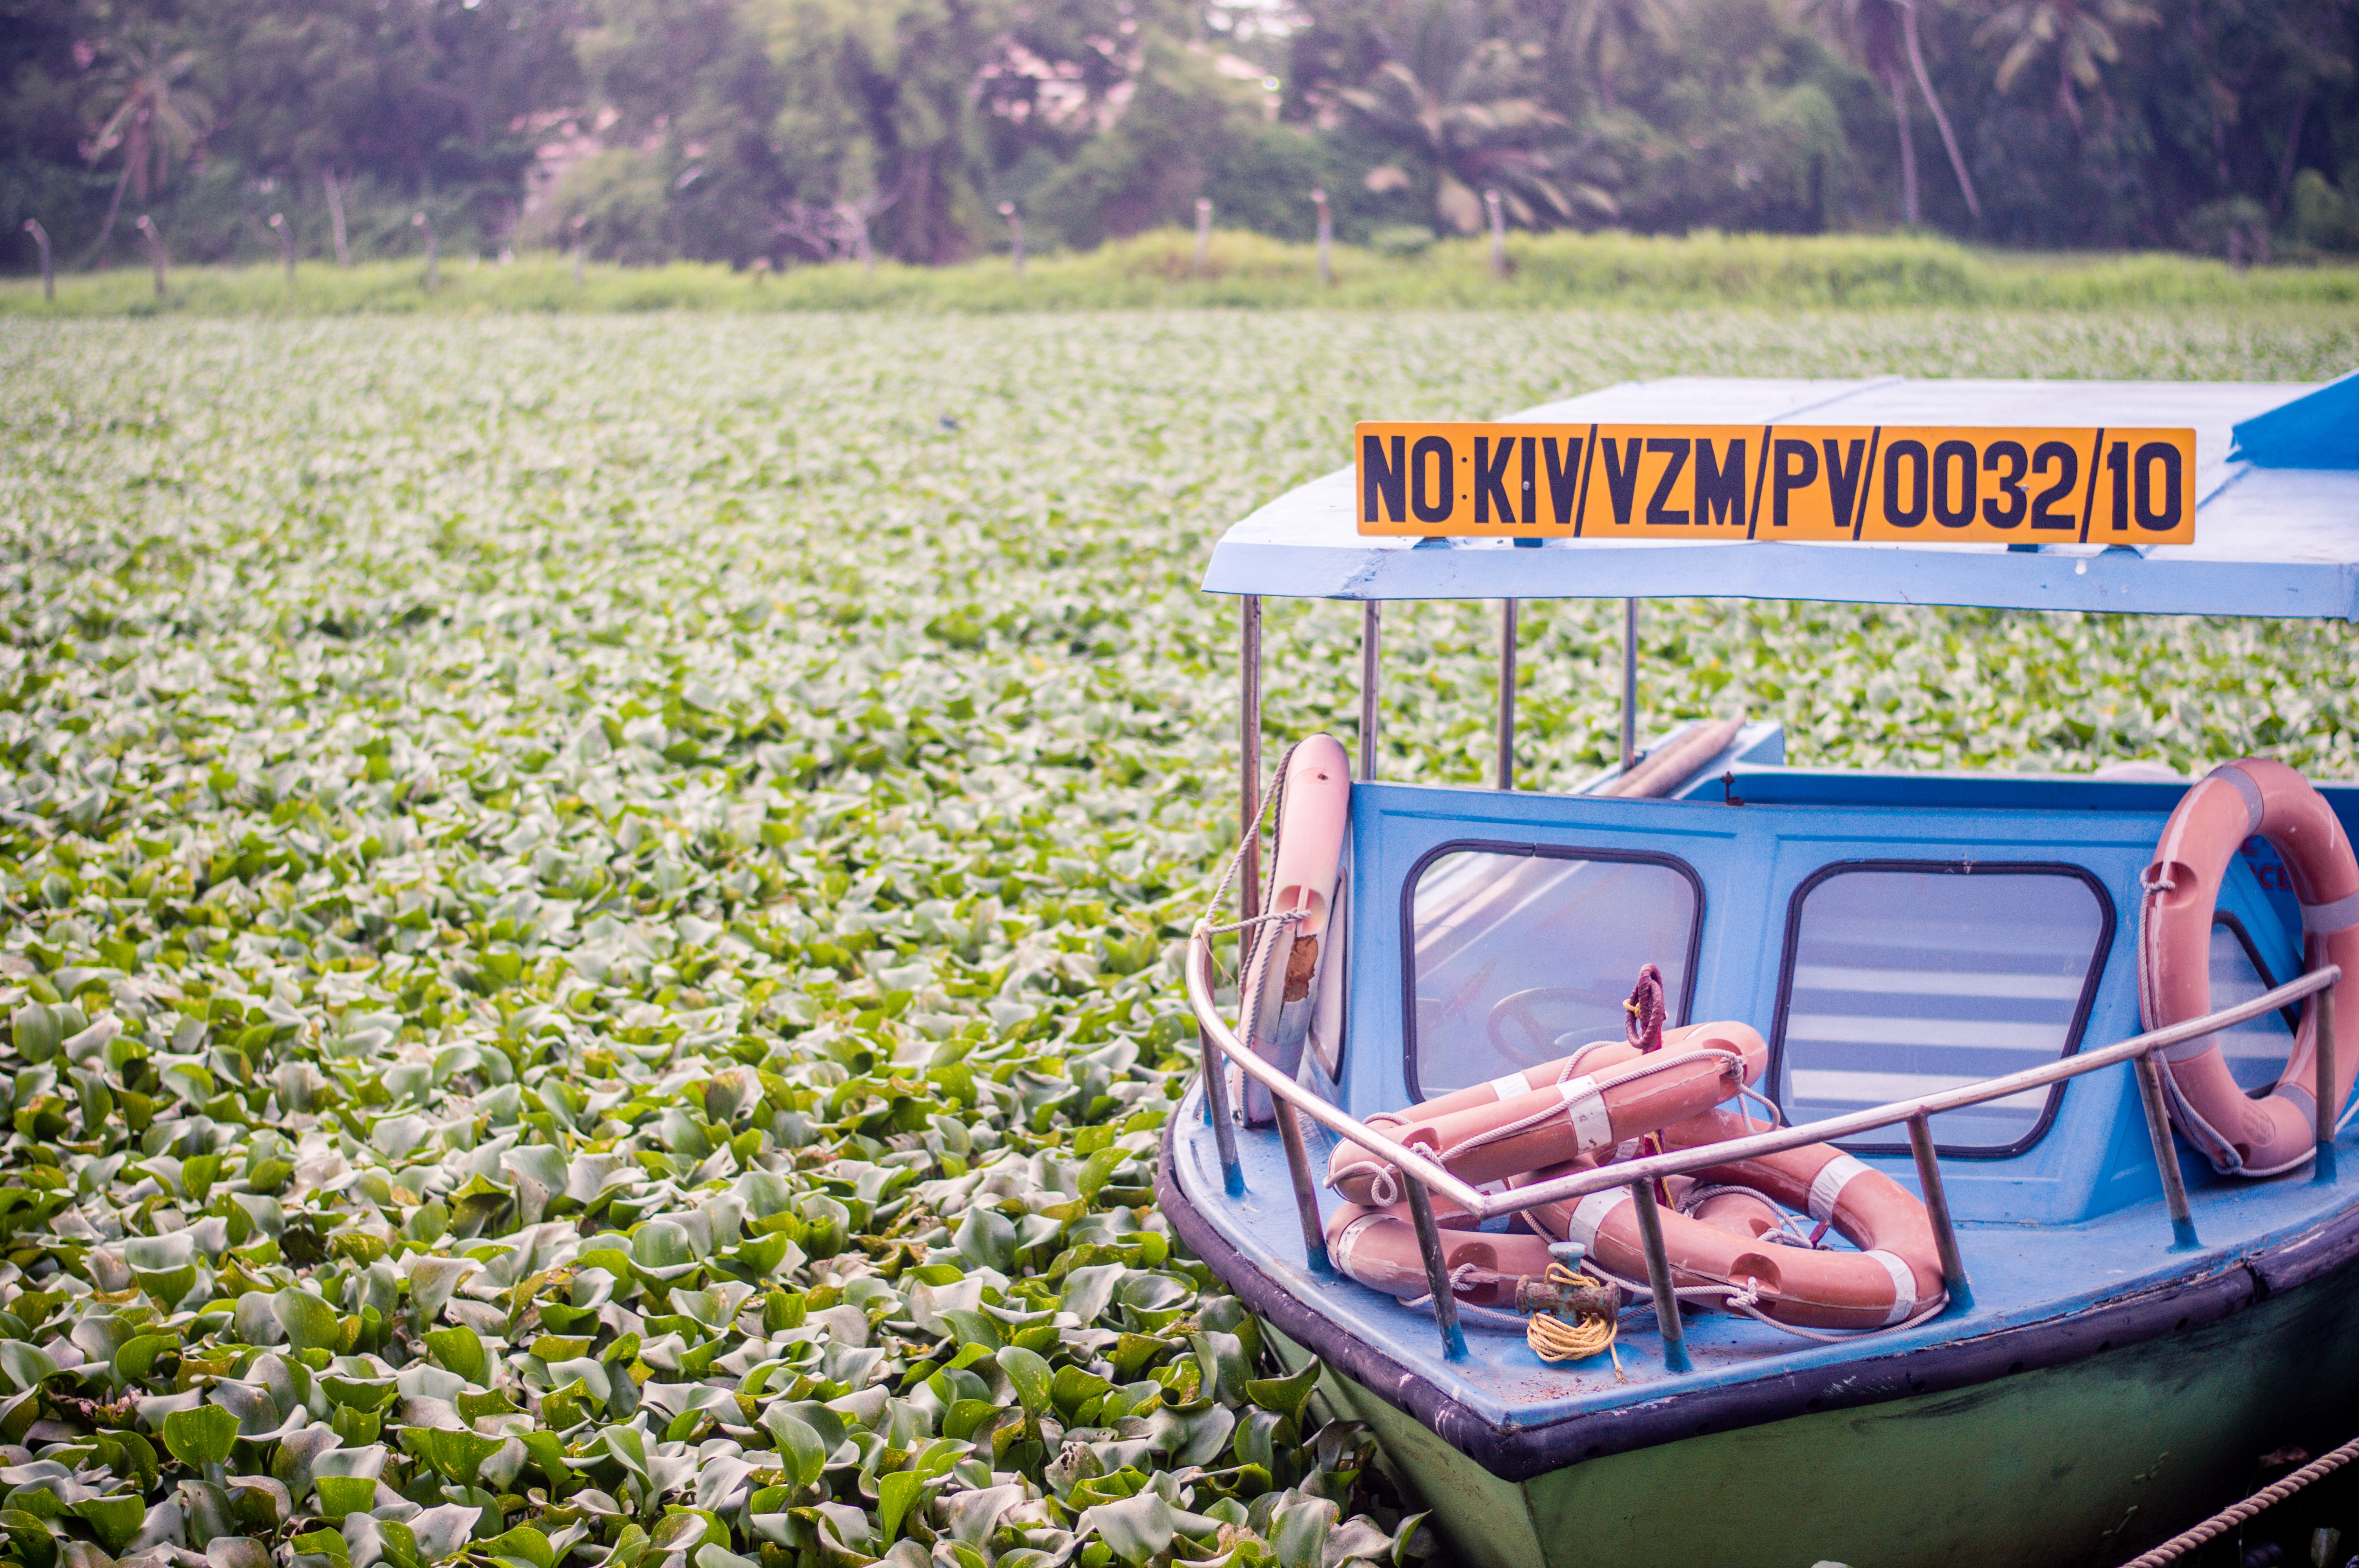 Tour boat with lifesavers in a bog covered in green water plants